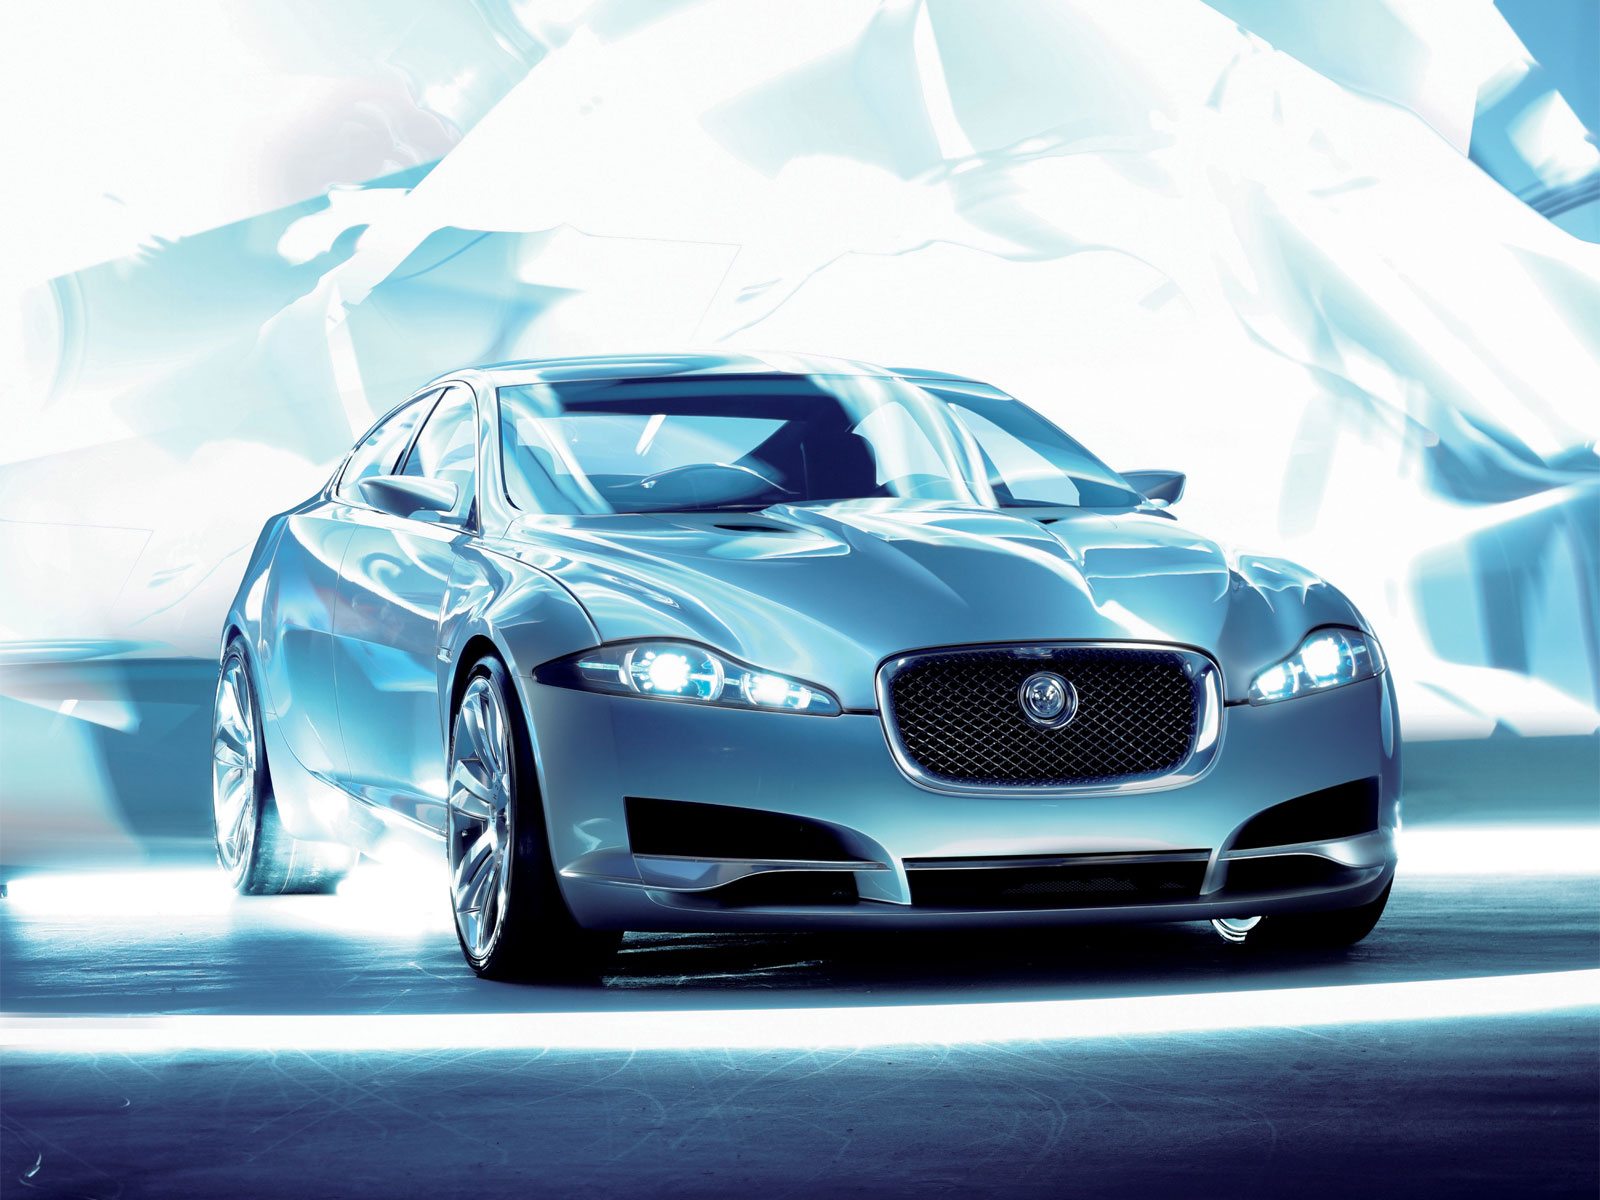 Jaguar Cars Hd Wallpapers Jaguar Hd Wallpapers Free Download Full